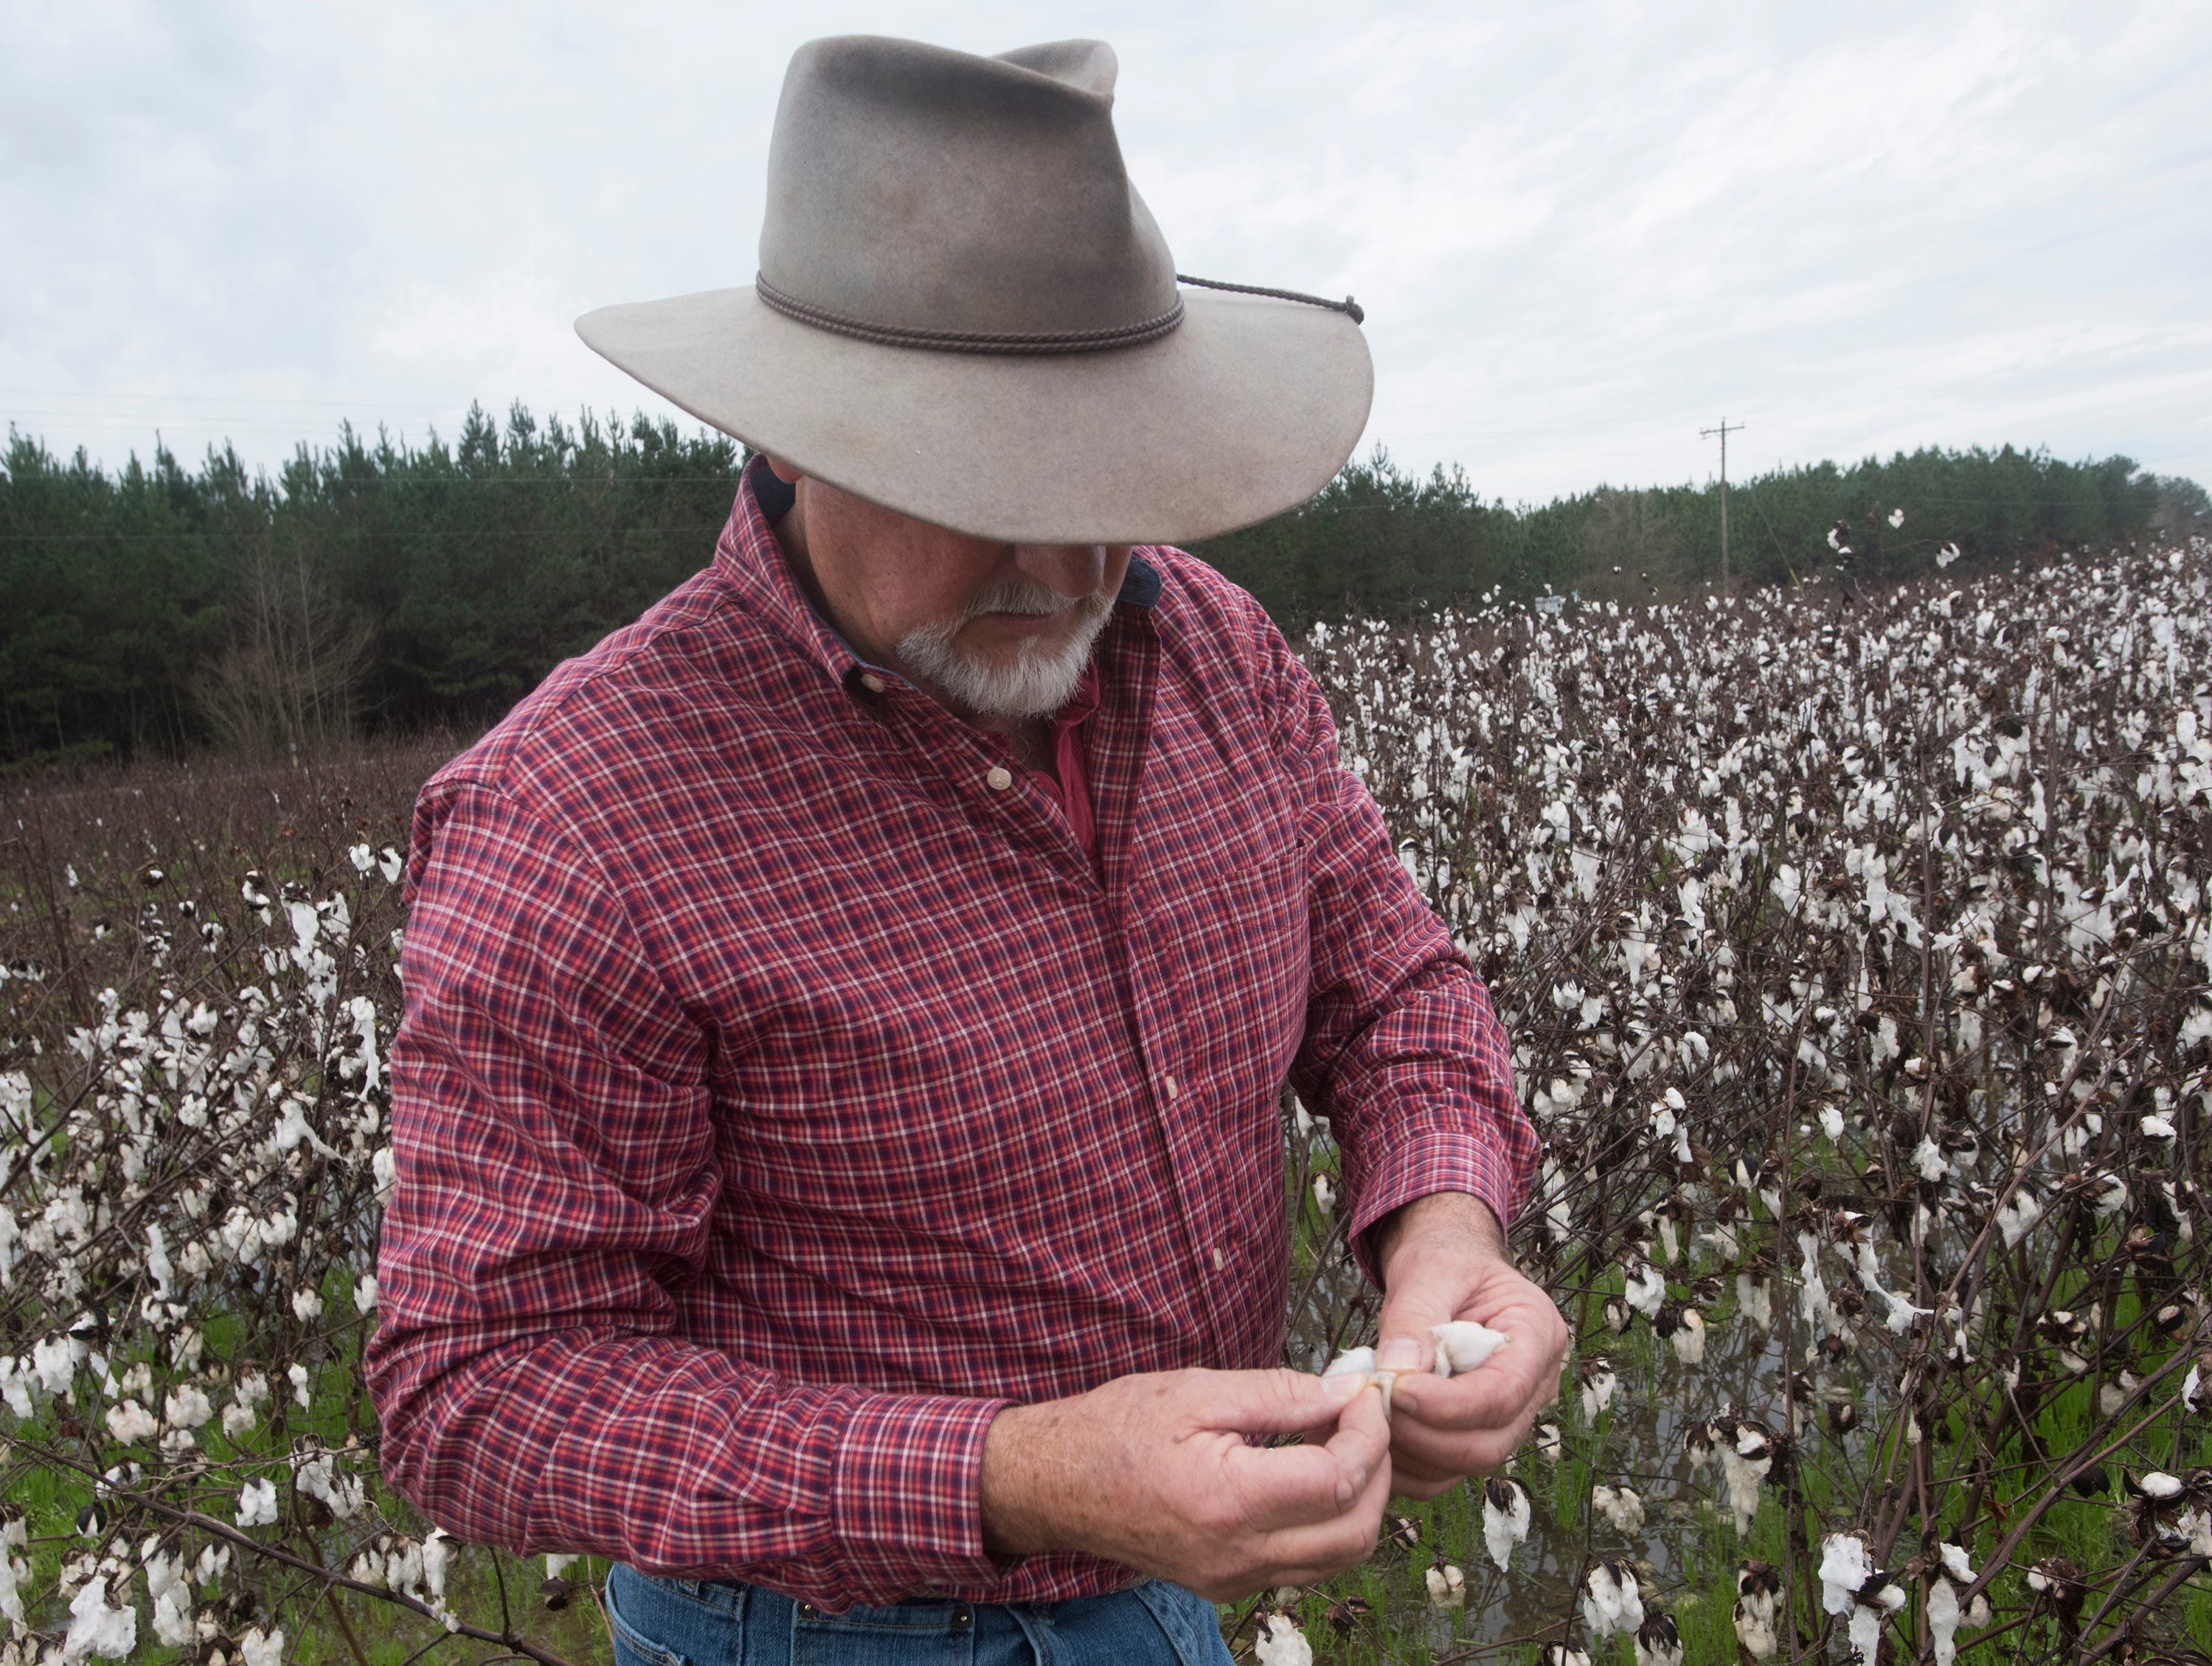 Atmore area farmer, Rodney Helton, inspects what is left of his cotton crop in a rain-soaked field on Thursday, Jan. 3, 2019. Helton, like many area farmers, is facing significant loses after record rainfall total this harvesting season.